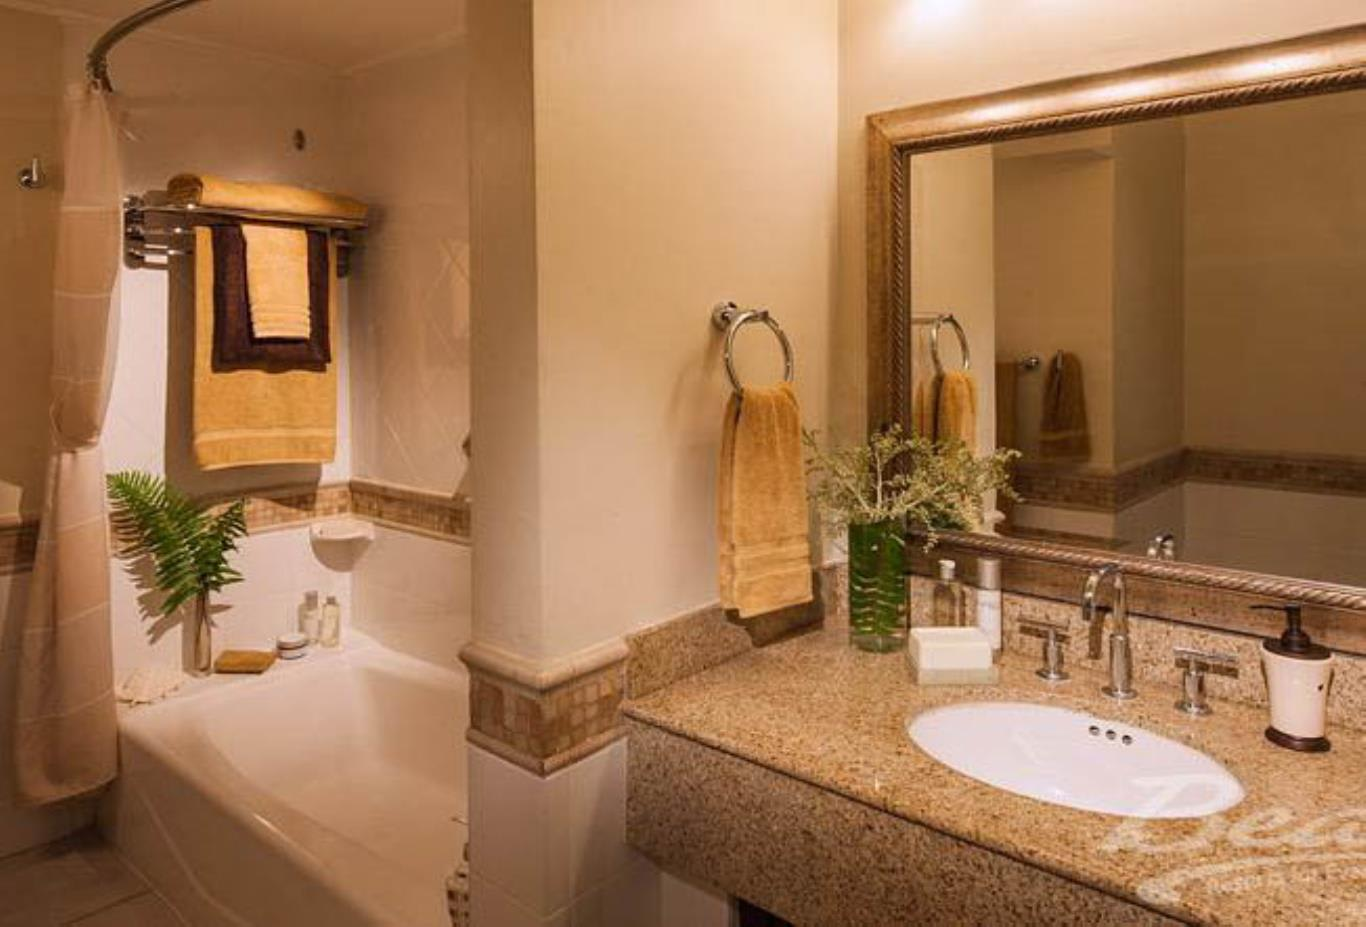 Caribbean Luxury Family Sized Suite - PK,PD Bath